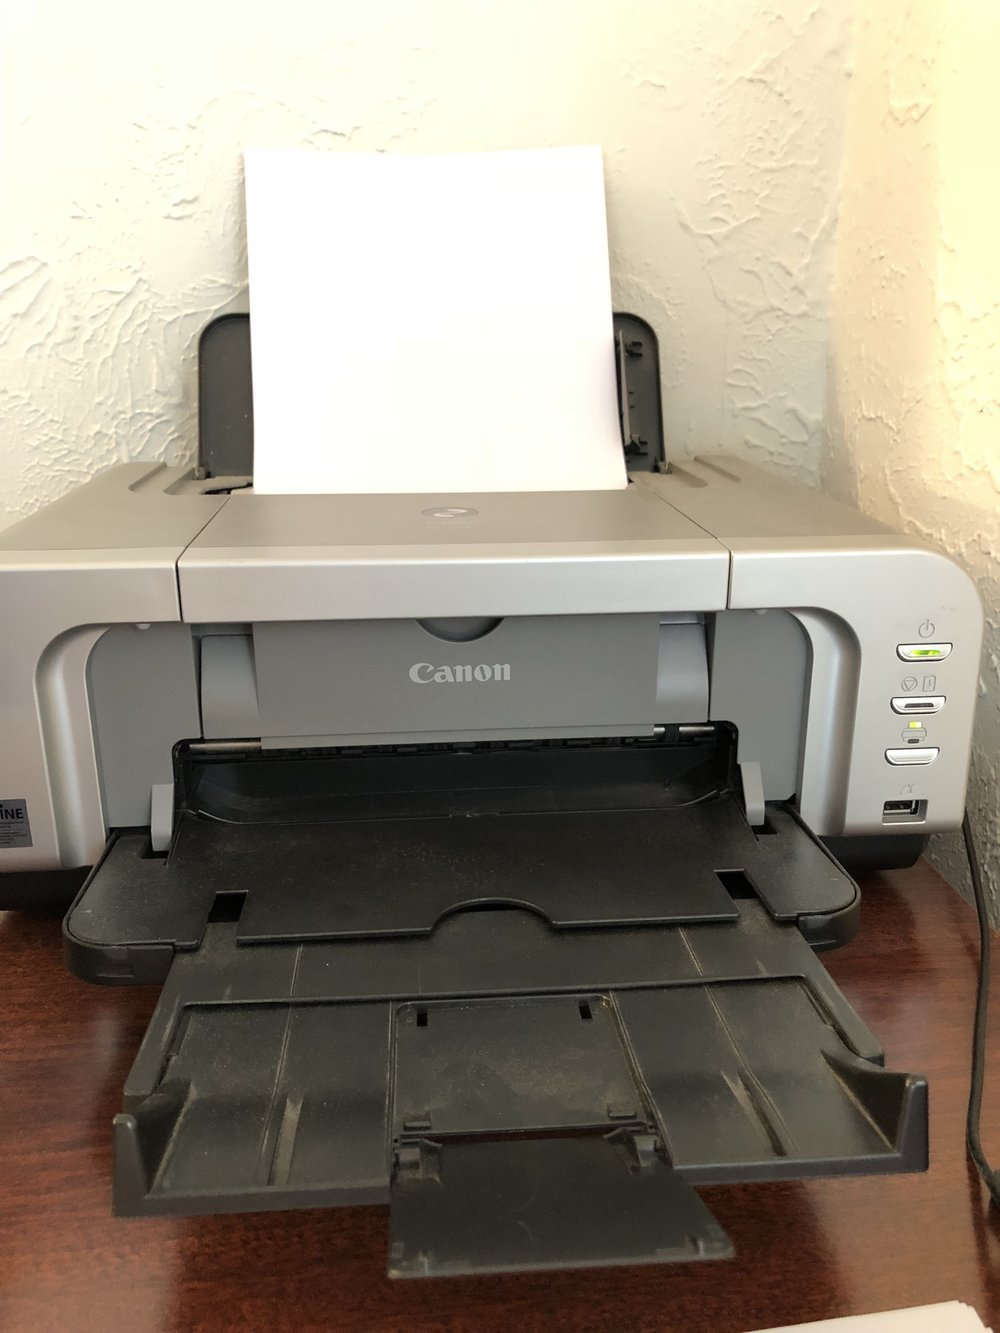 My beloved printer: a Canon Pixma iP4200